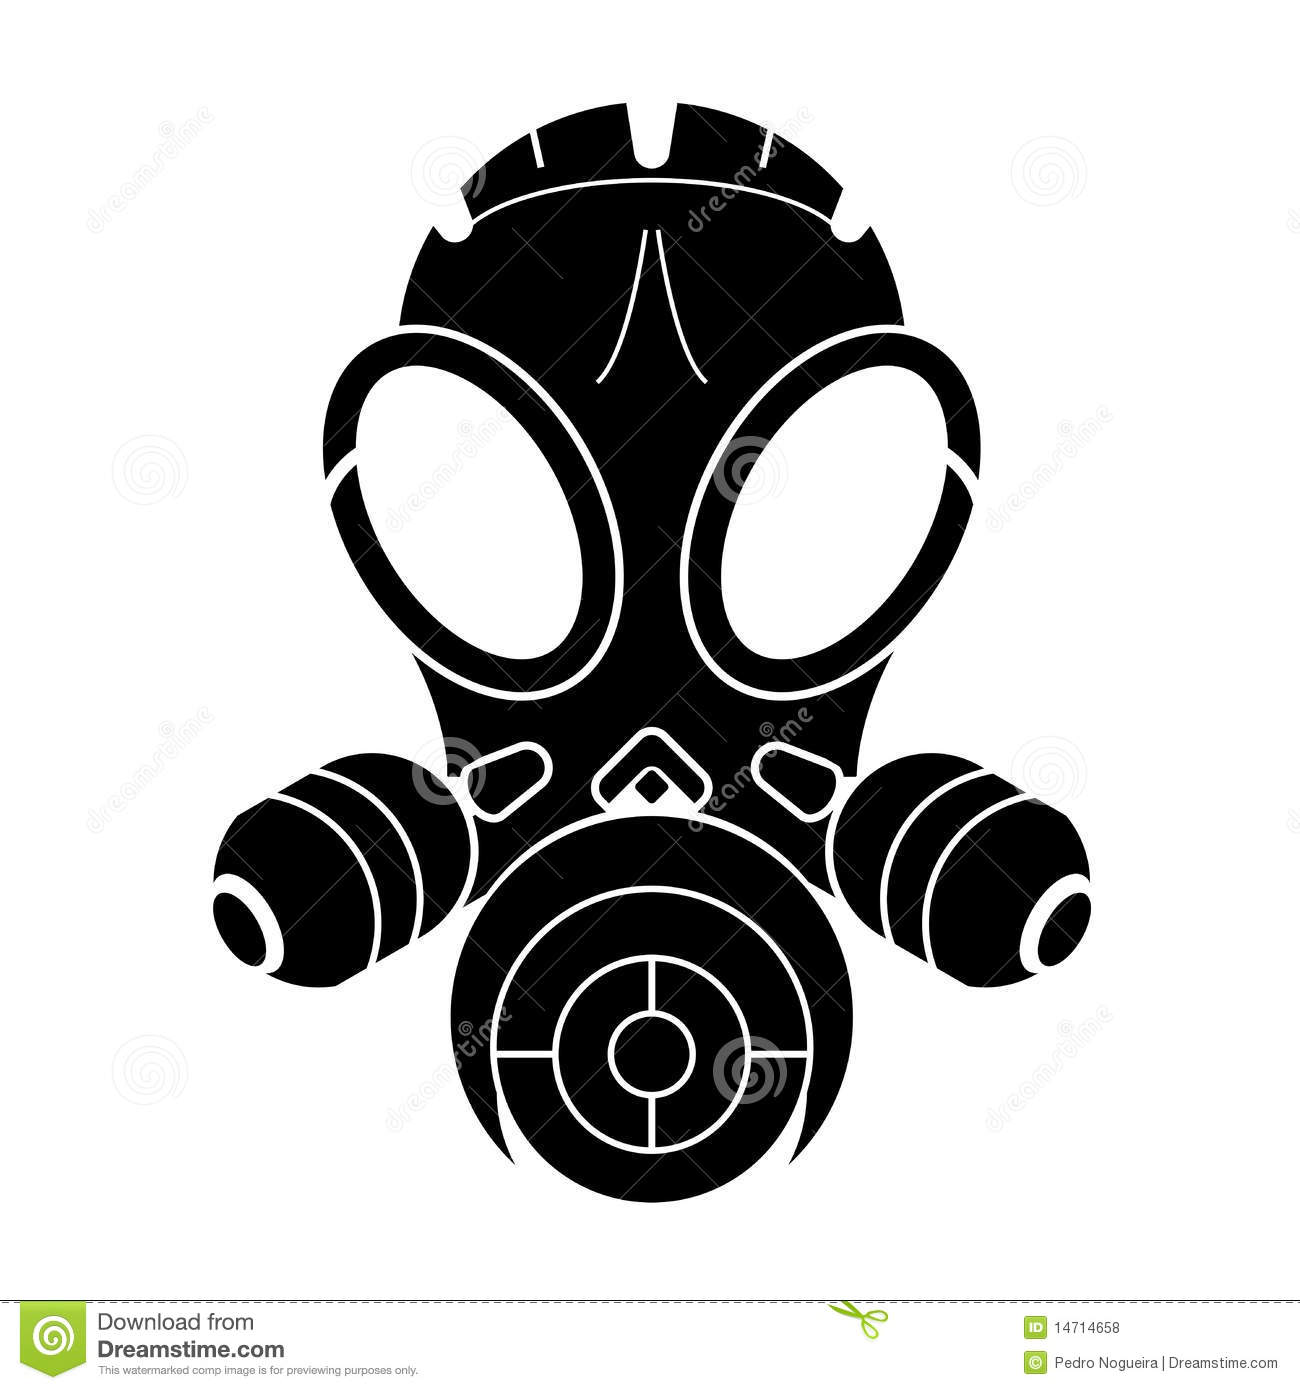 Gas Mask Stock Illustrations – 1,873 Gas Mask Stock Illustrations ...